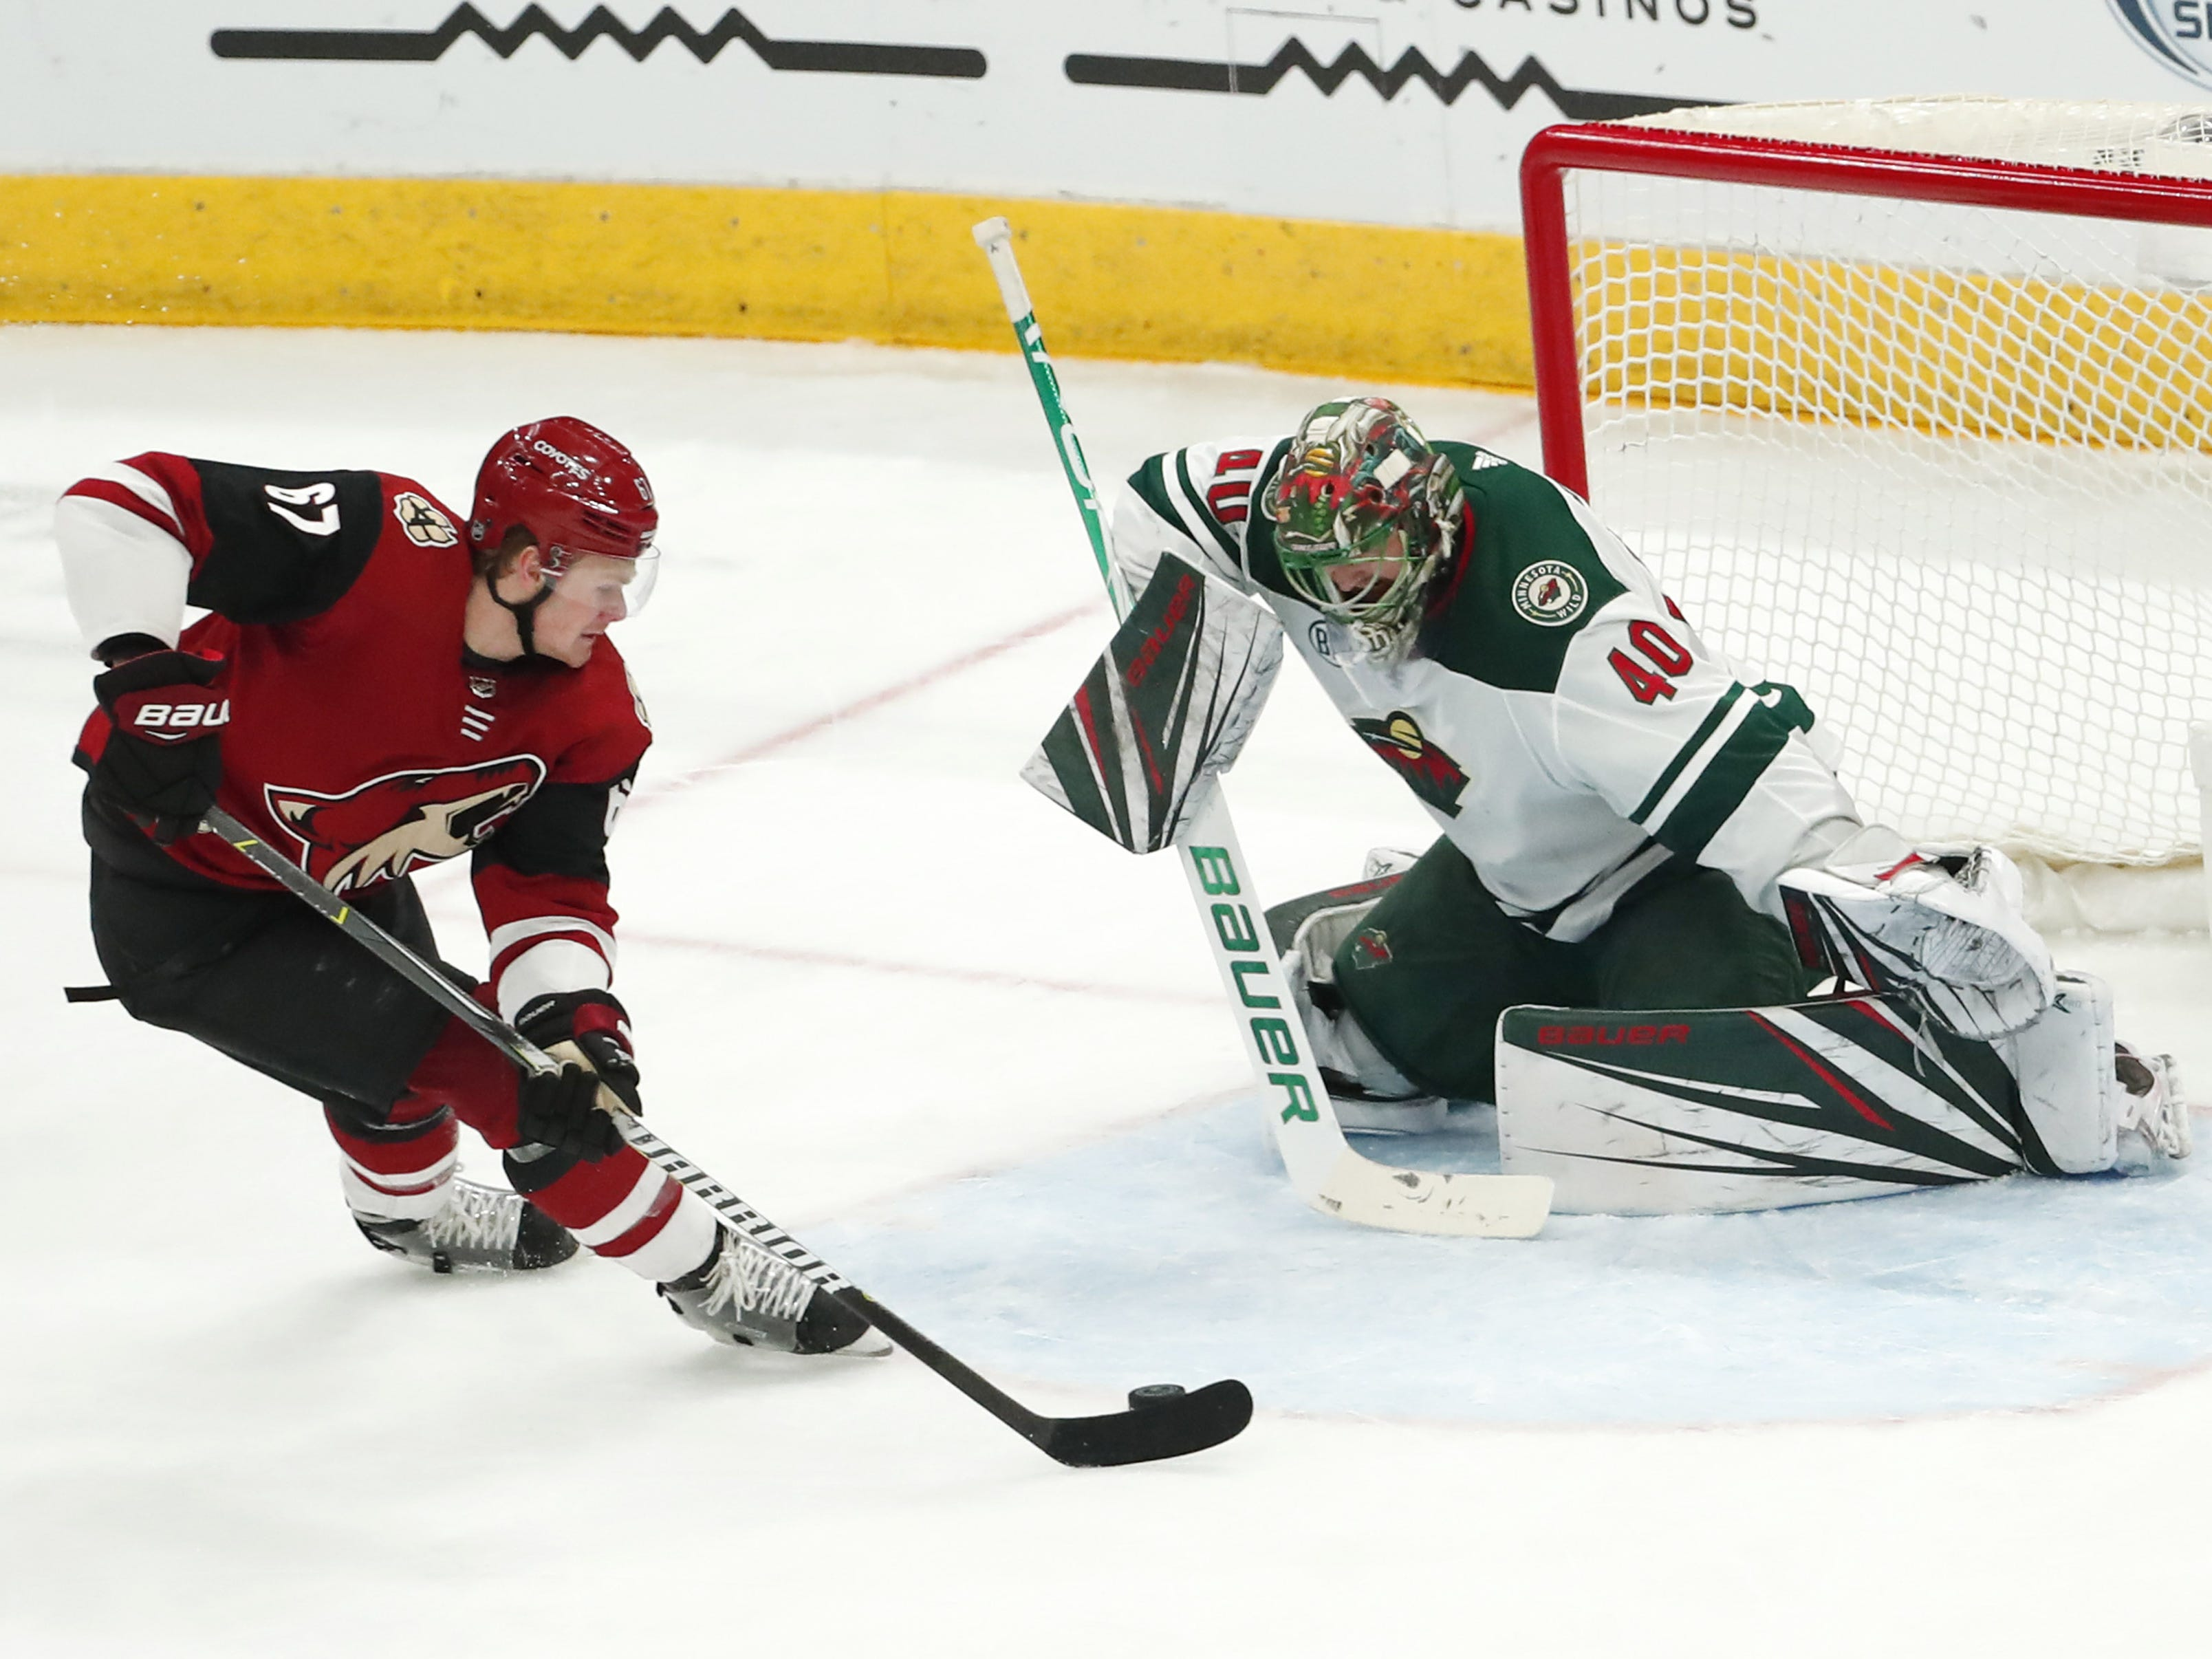 Arizona Coyotes left wing Lawson Crouse (67) breaks away against Minnesota Wild goaltender Devan Dubnyk (40) during the third period in Glendale March 31, 2019.